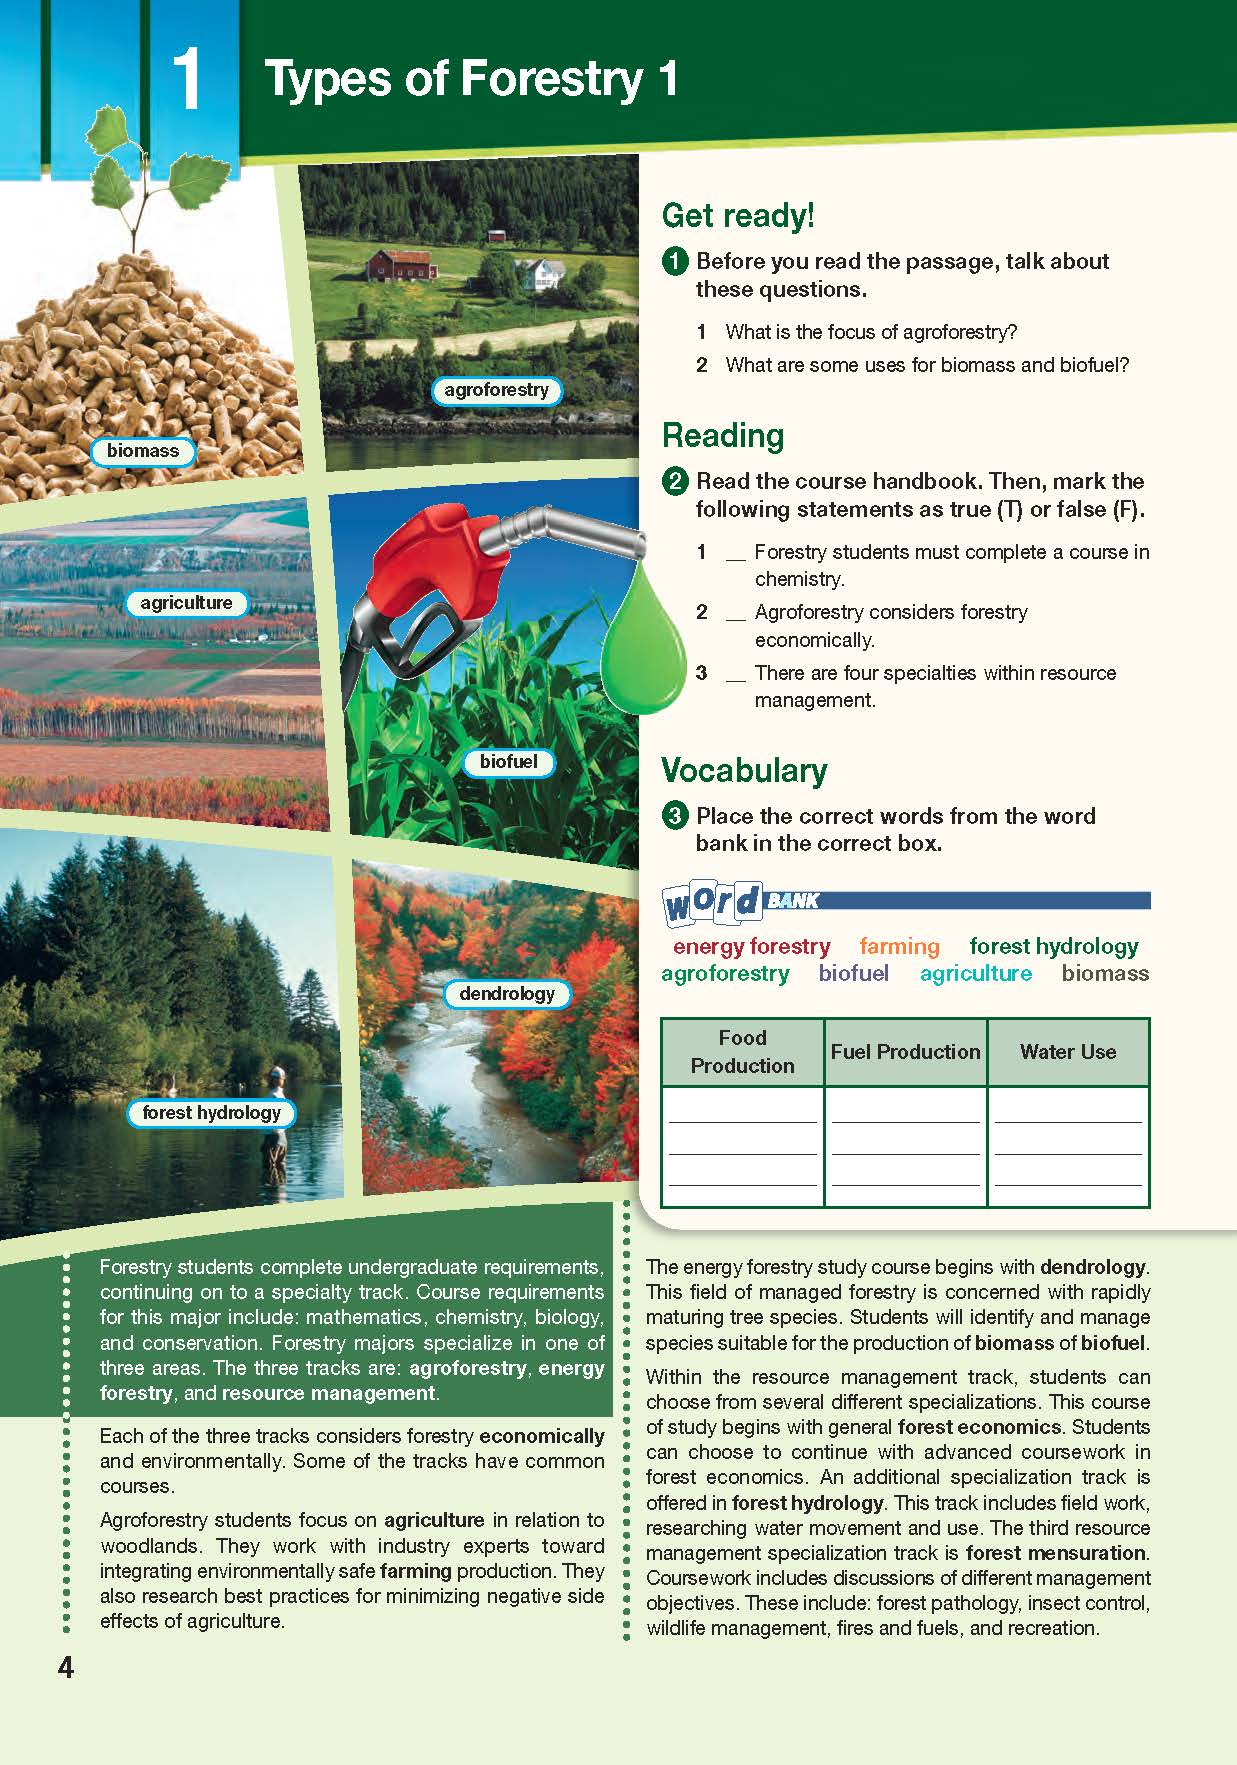 ESP English for Specific Purposes - Career Paths: Natural Resources I Forestry - Sample Page 1